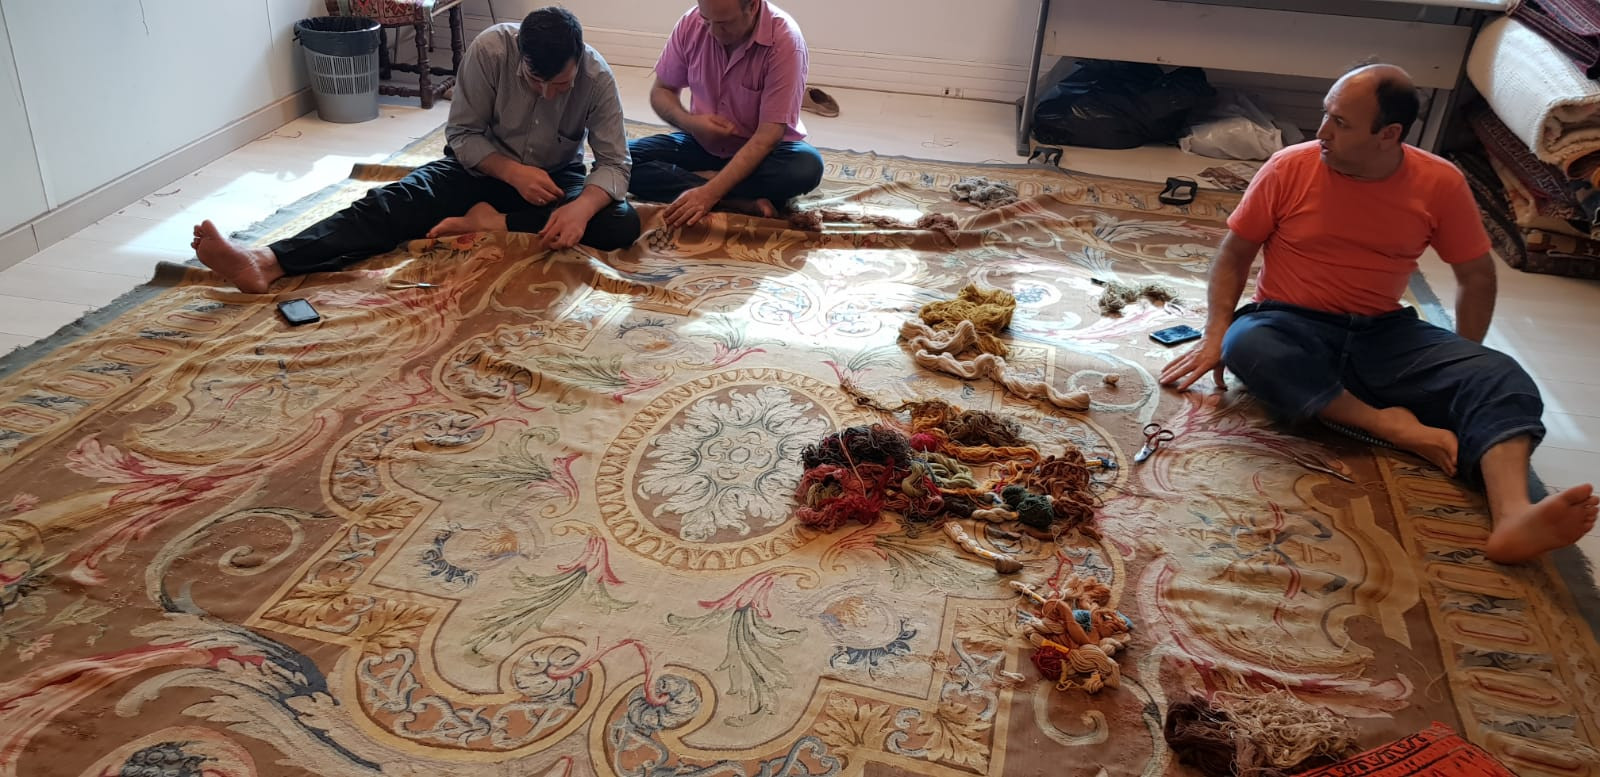 Atelier des Arts - Restauration de tapis